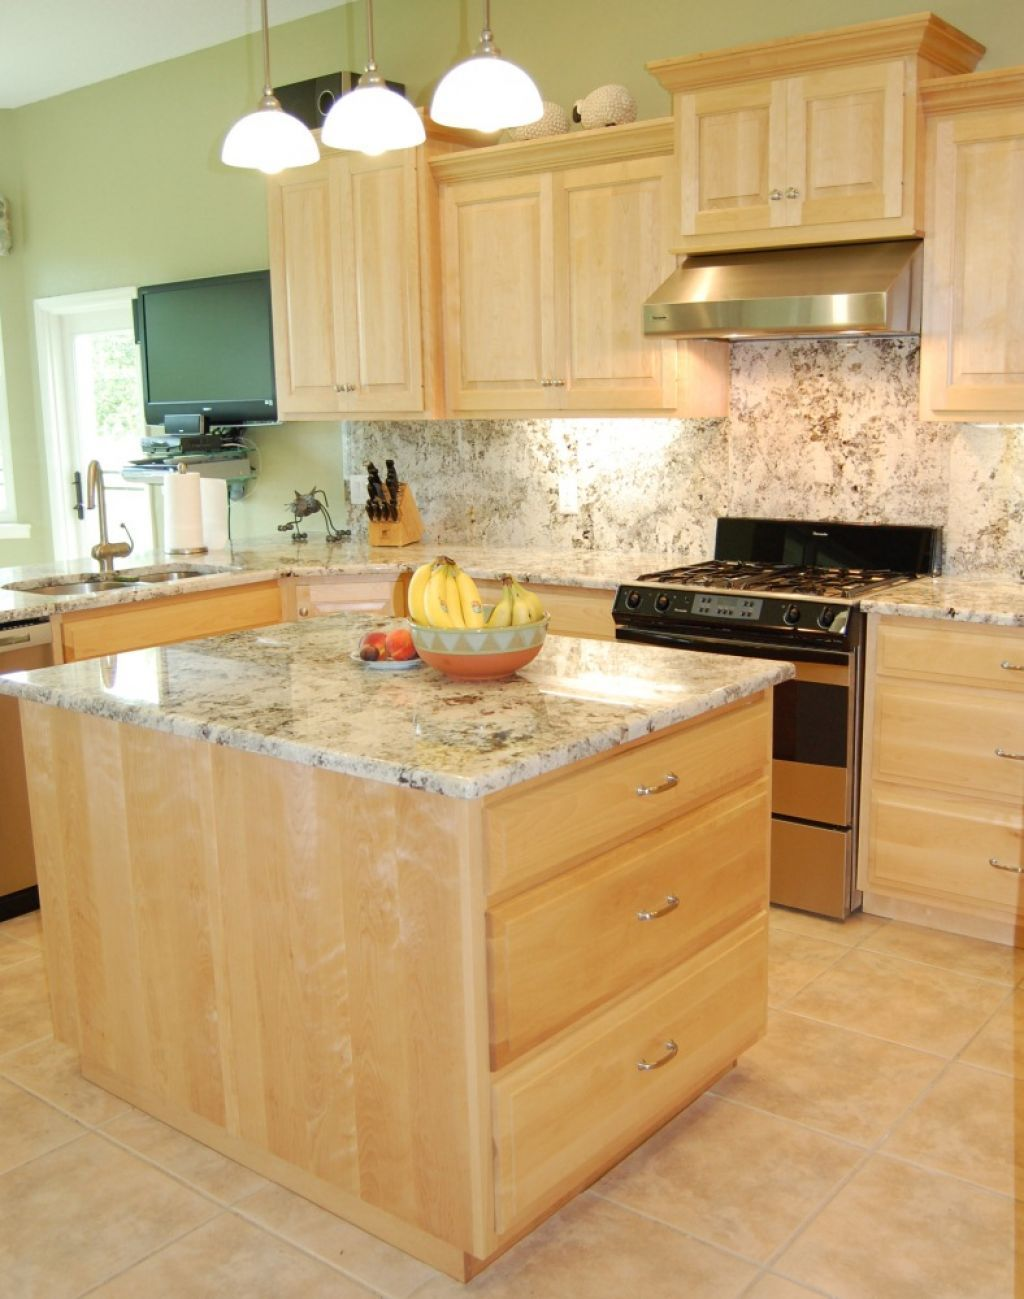 Photo of Image Of Maple Kitchen Cabinets – yentua.com